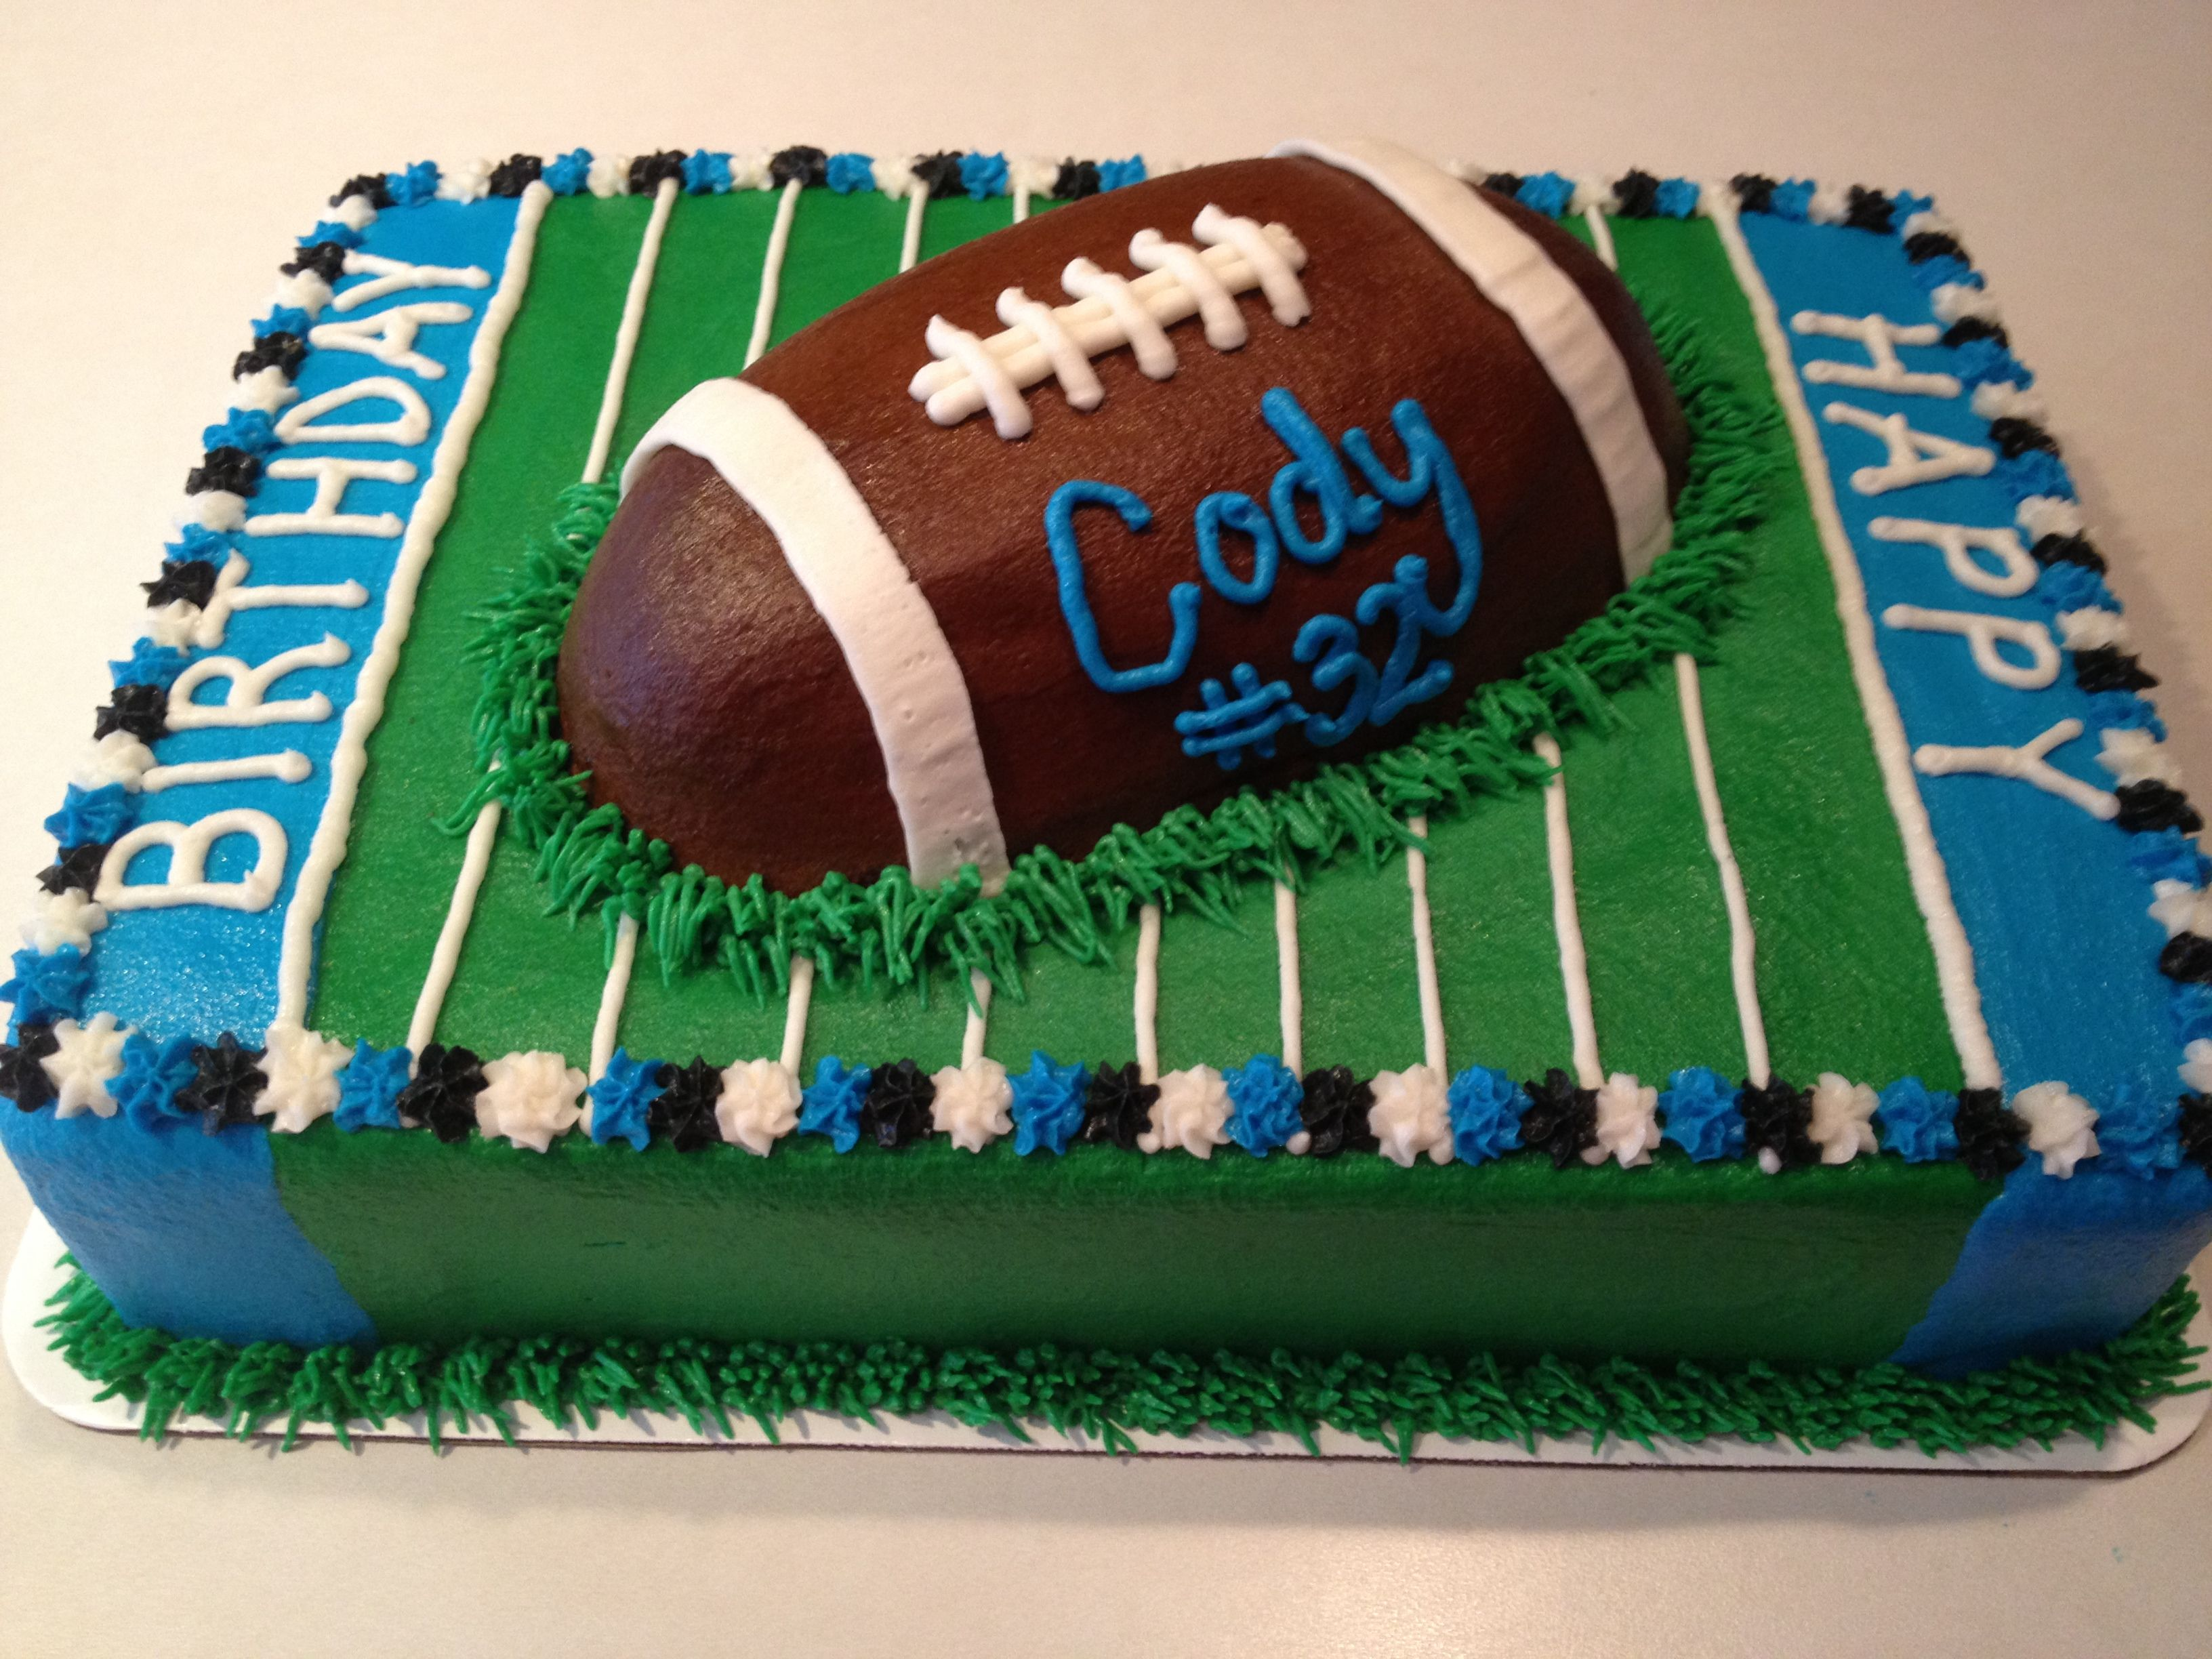 Dallas cowboys birthday cake ideas and designs - Birthday Cake Images For Girls Clip Art Pictures Pics With Name Ideas With Candles Love Designs Football Birthday Cakes Birthday Cake Images For Girls Clip